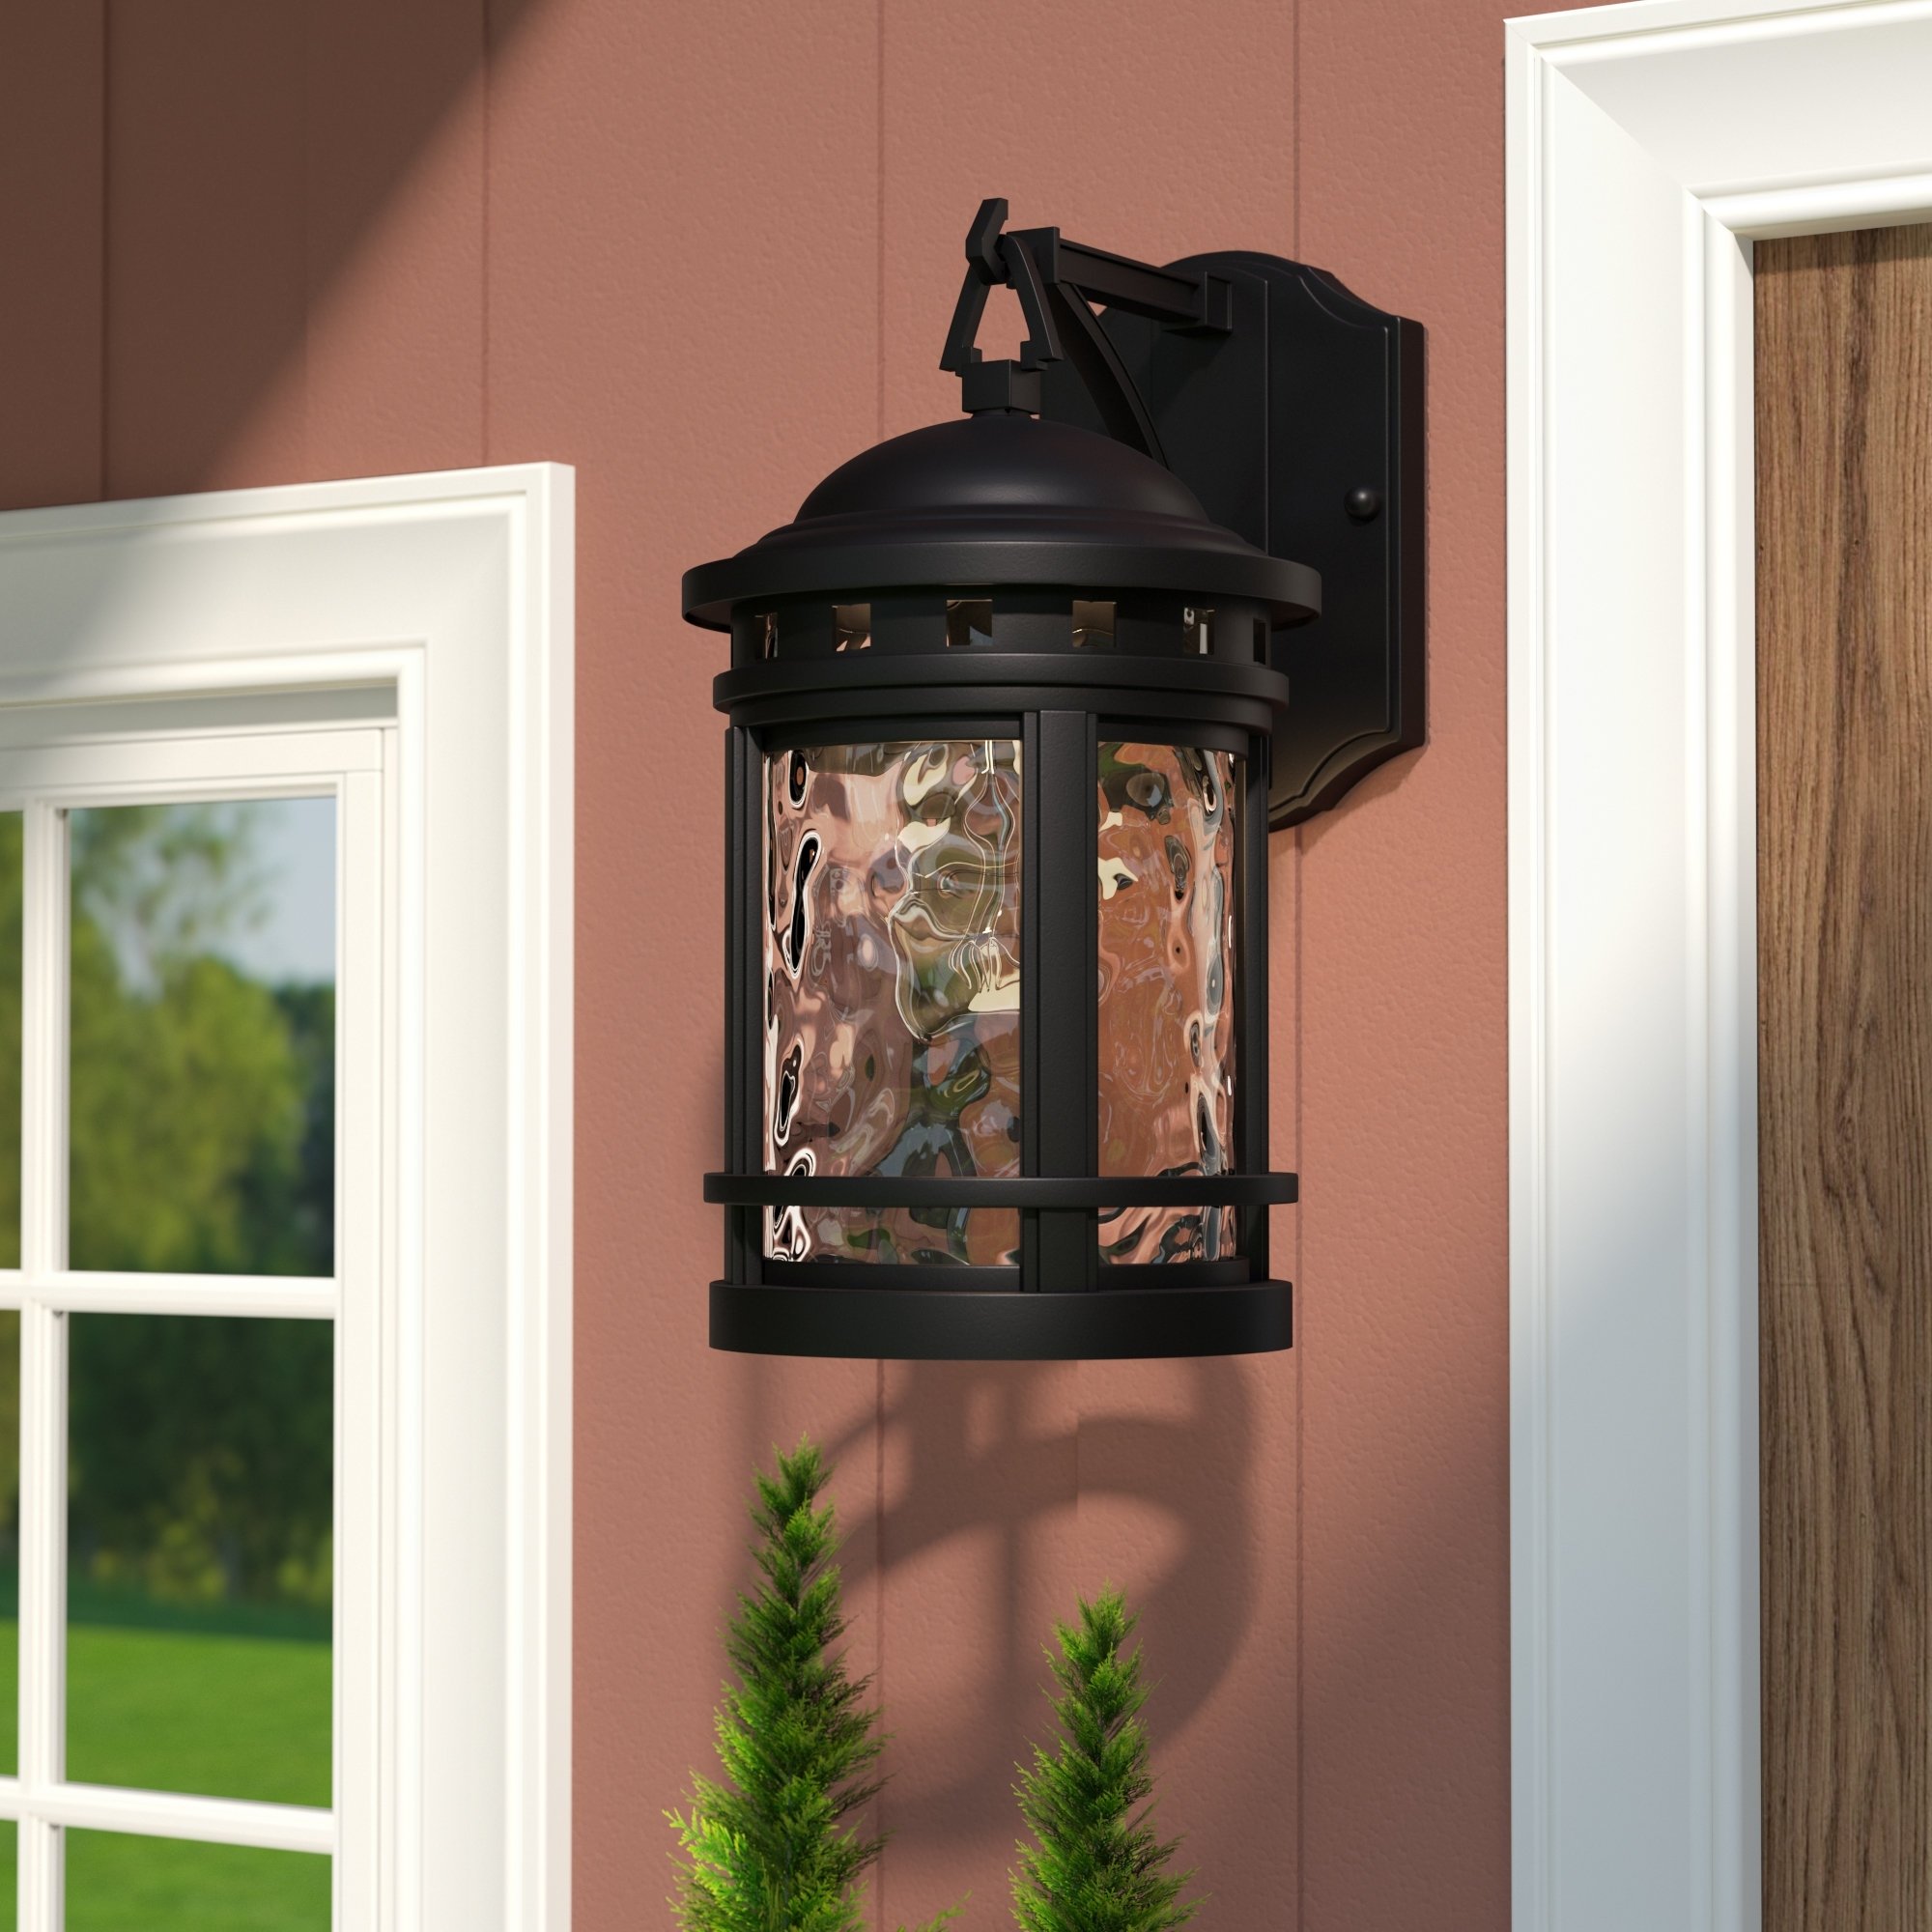 Wayfair With Regard To Outdoor Oversized Lanterns (View 17 of 20)